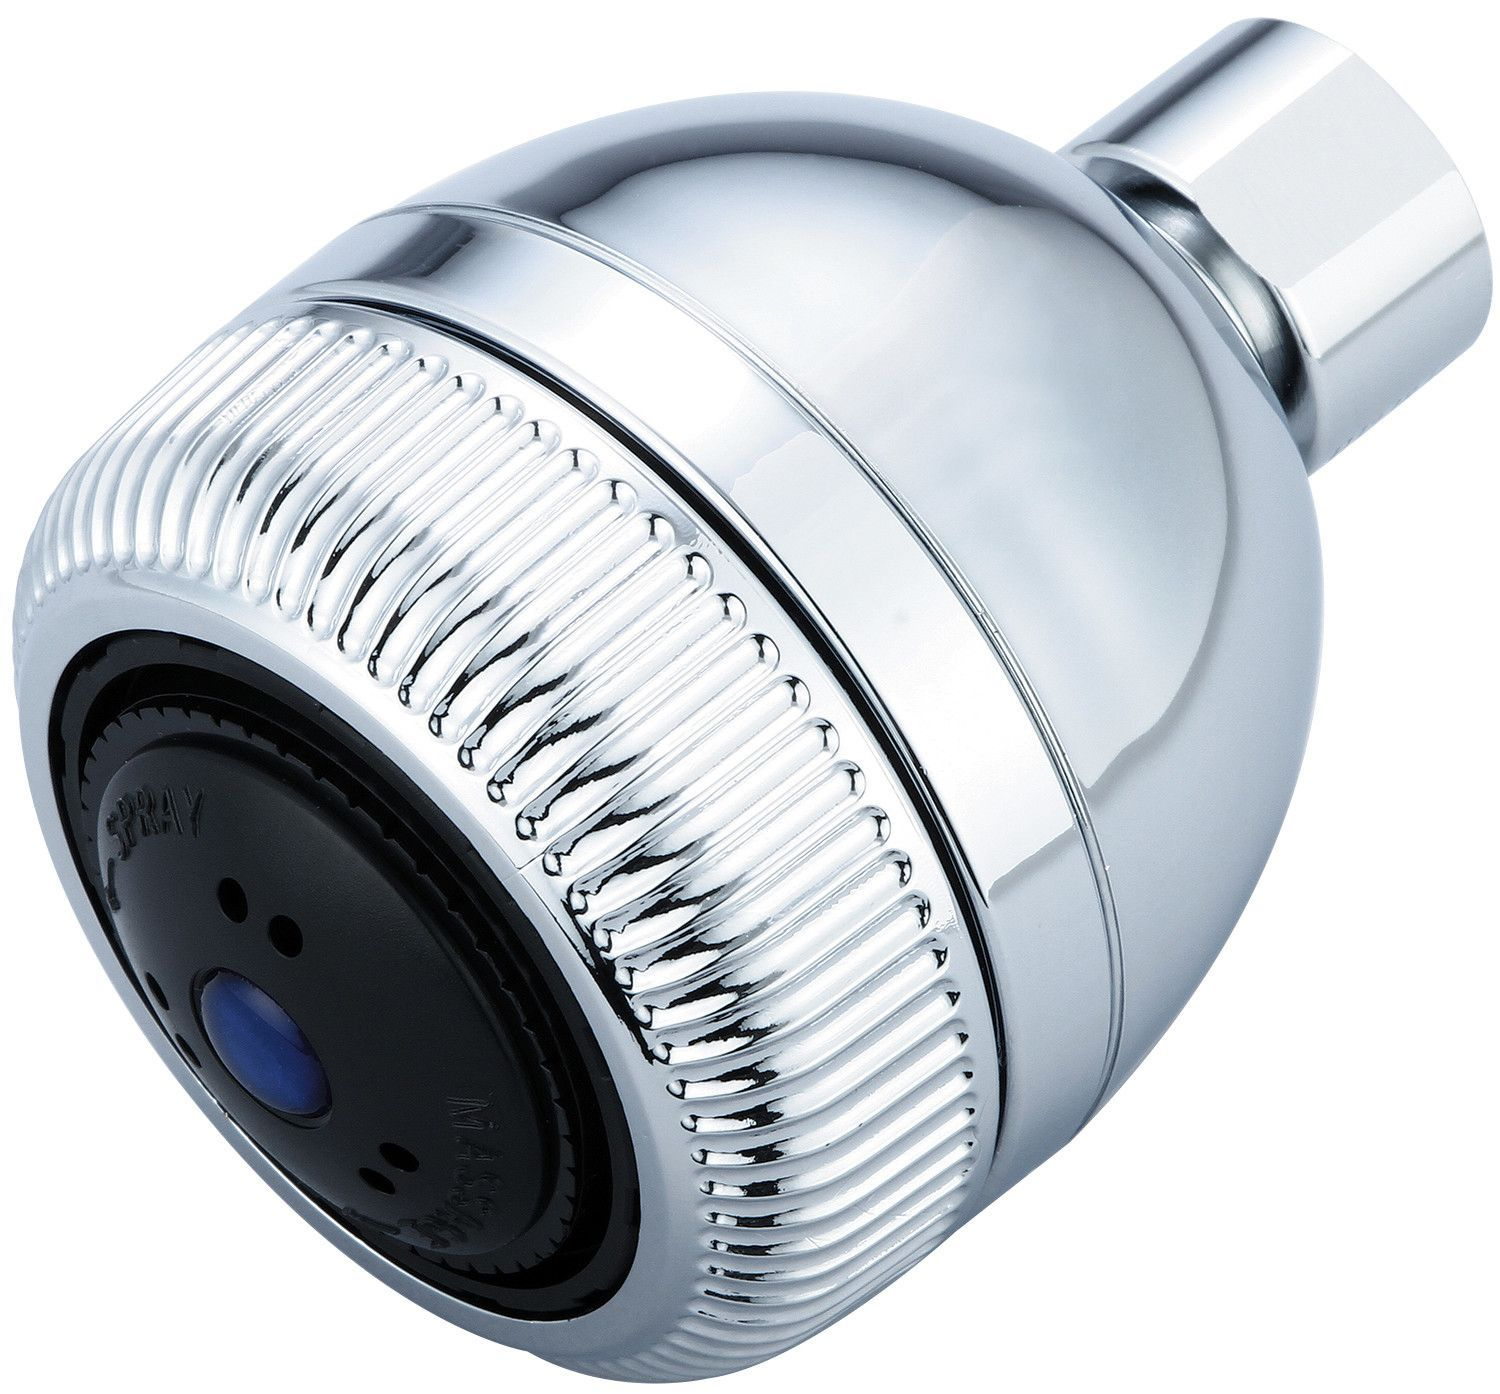 Triple Functions Pulsating Showerhead